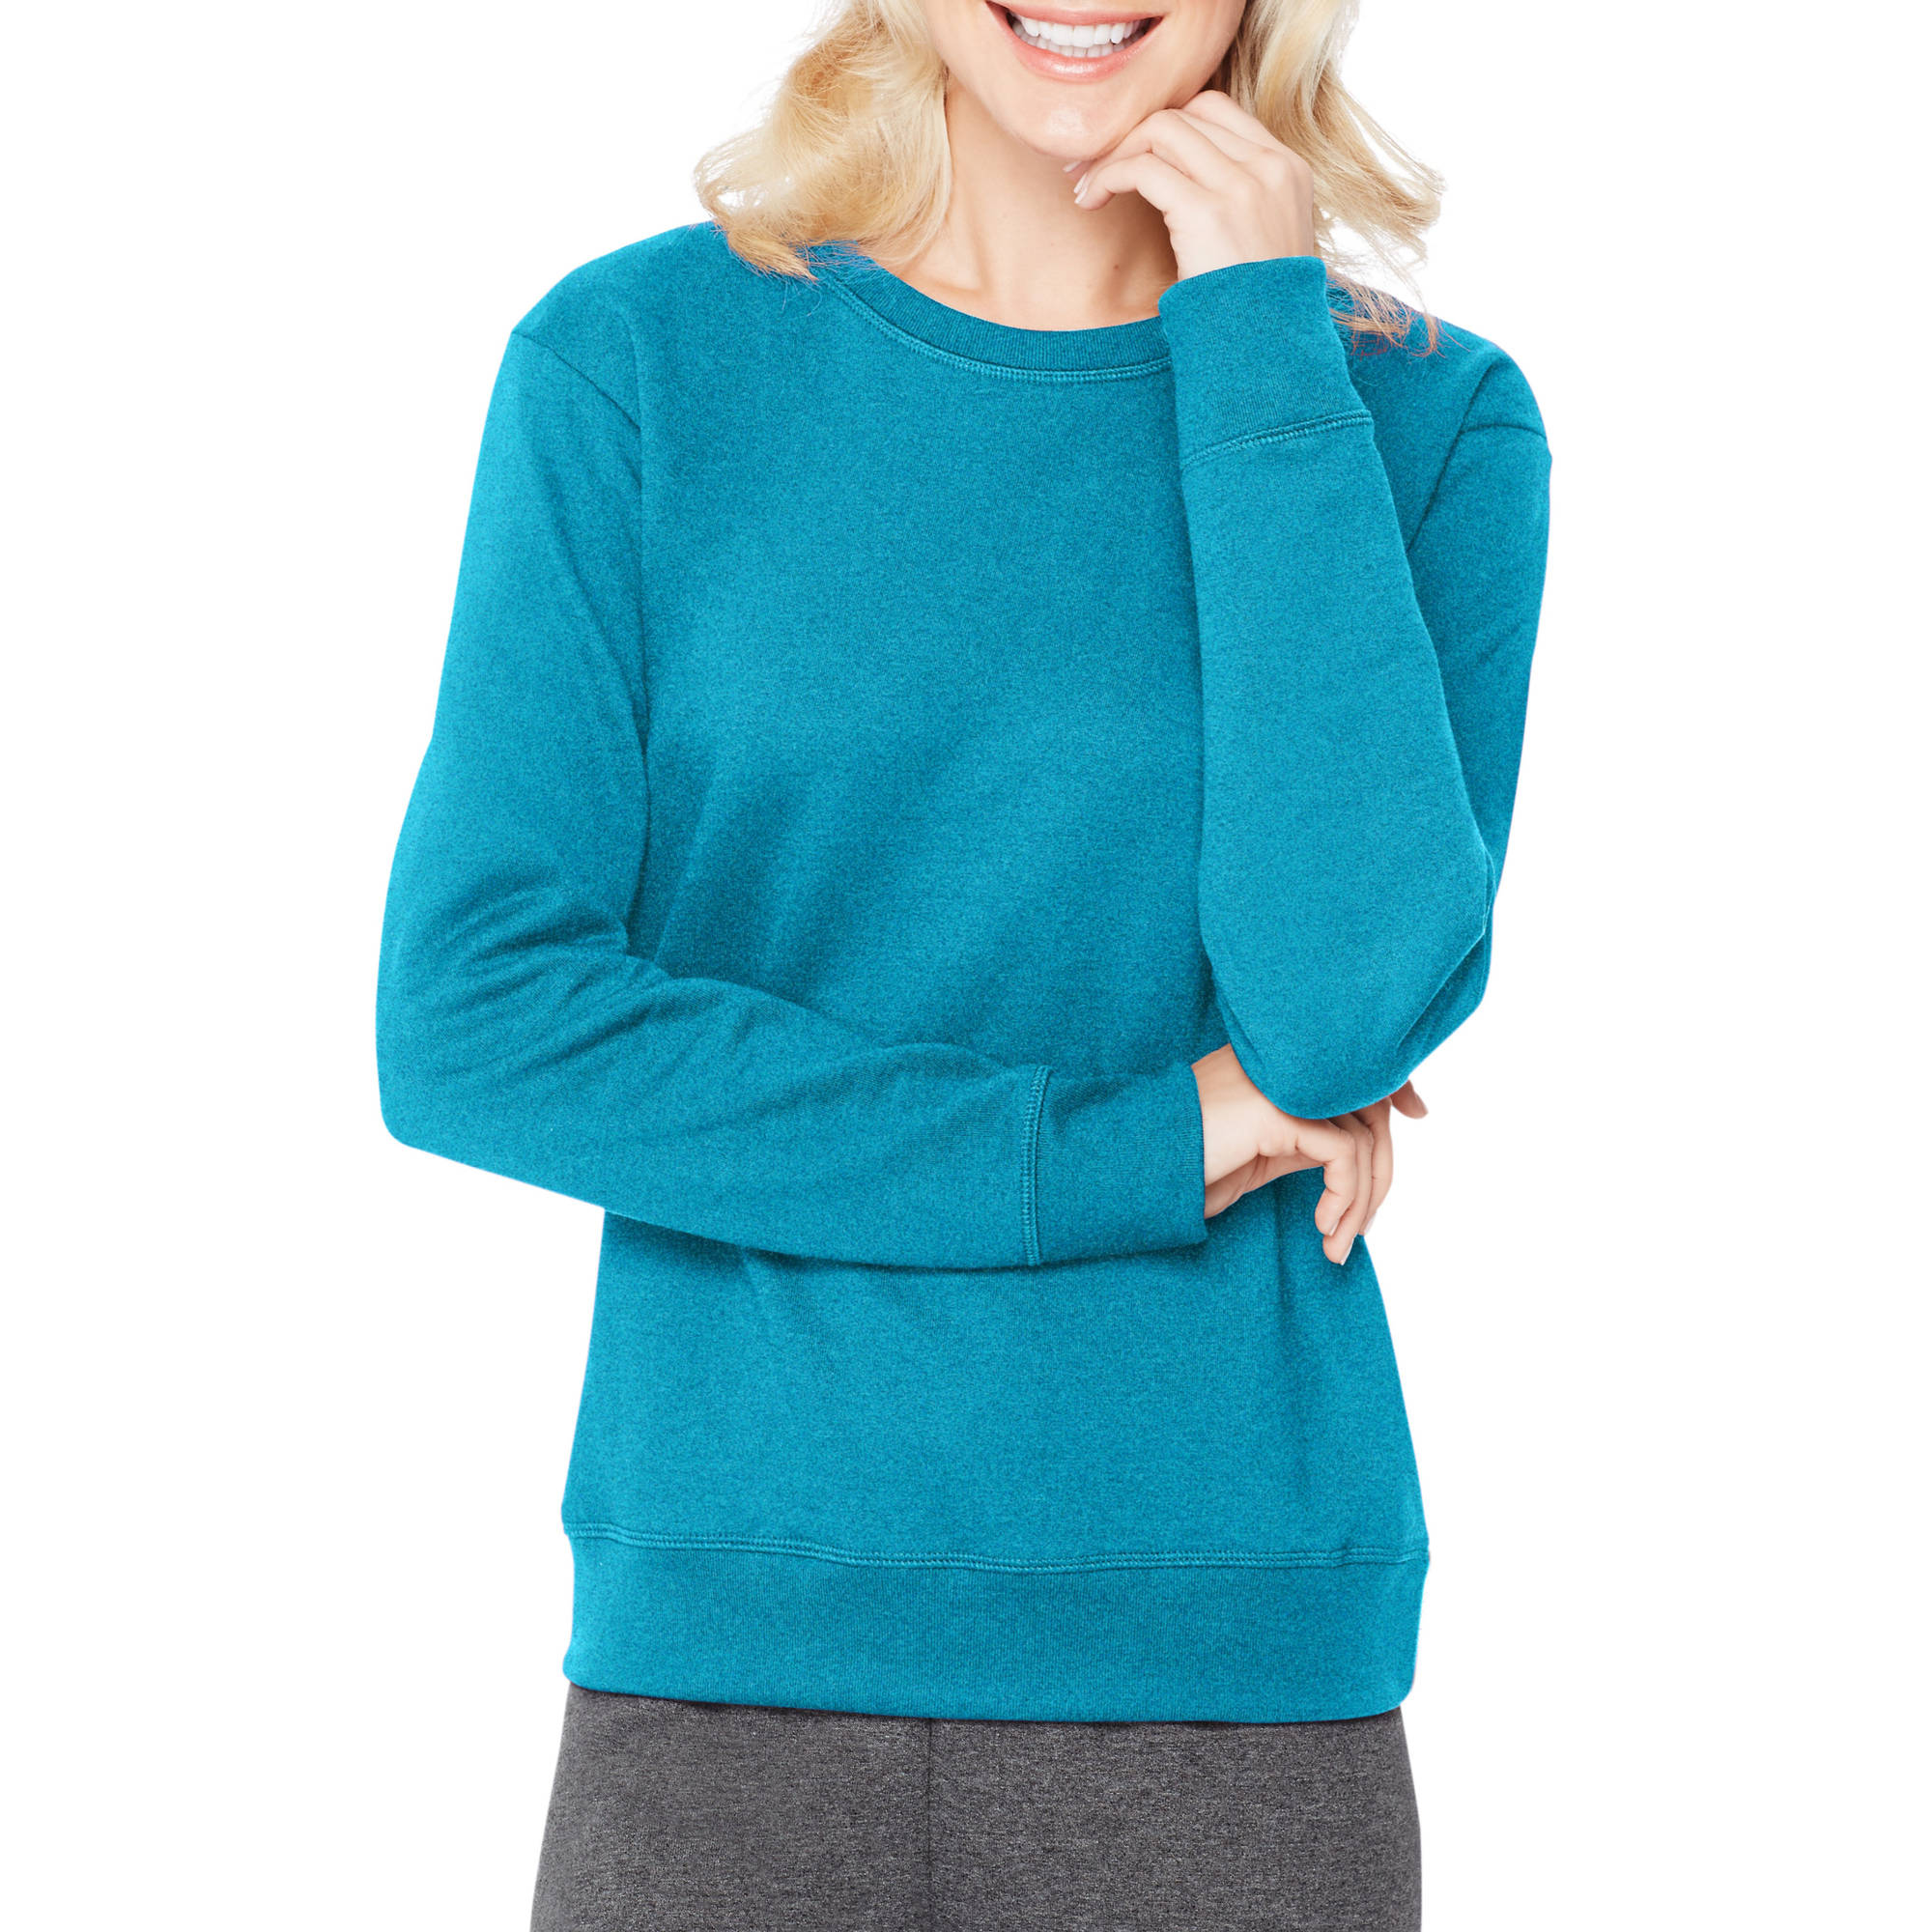 Hanes Women's Essential Crewneck Fleece Pullover Sweatshirt ...